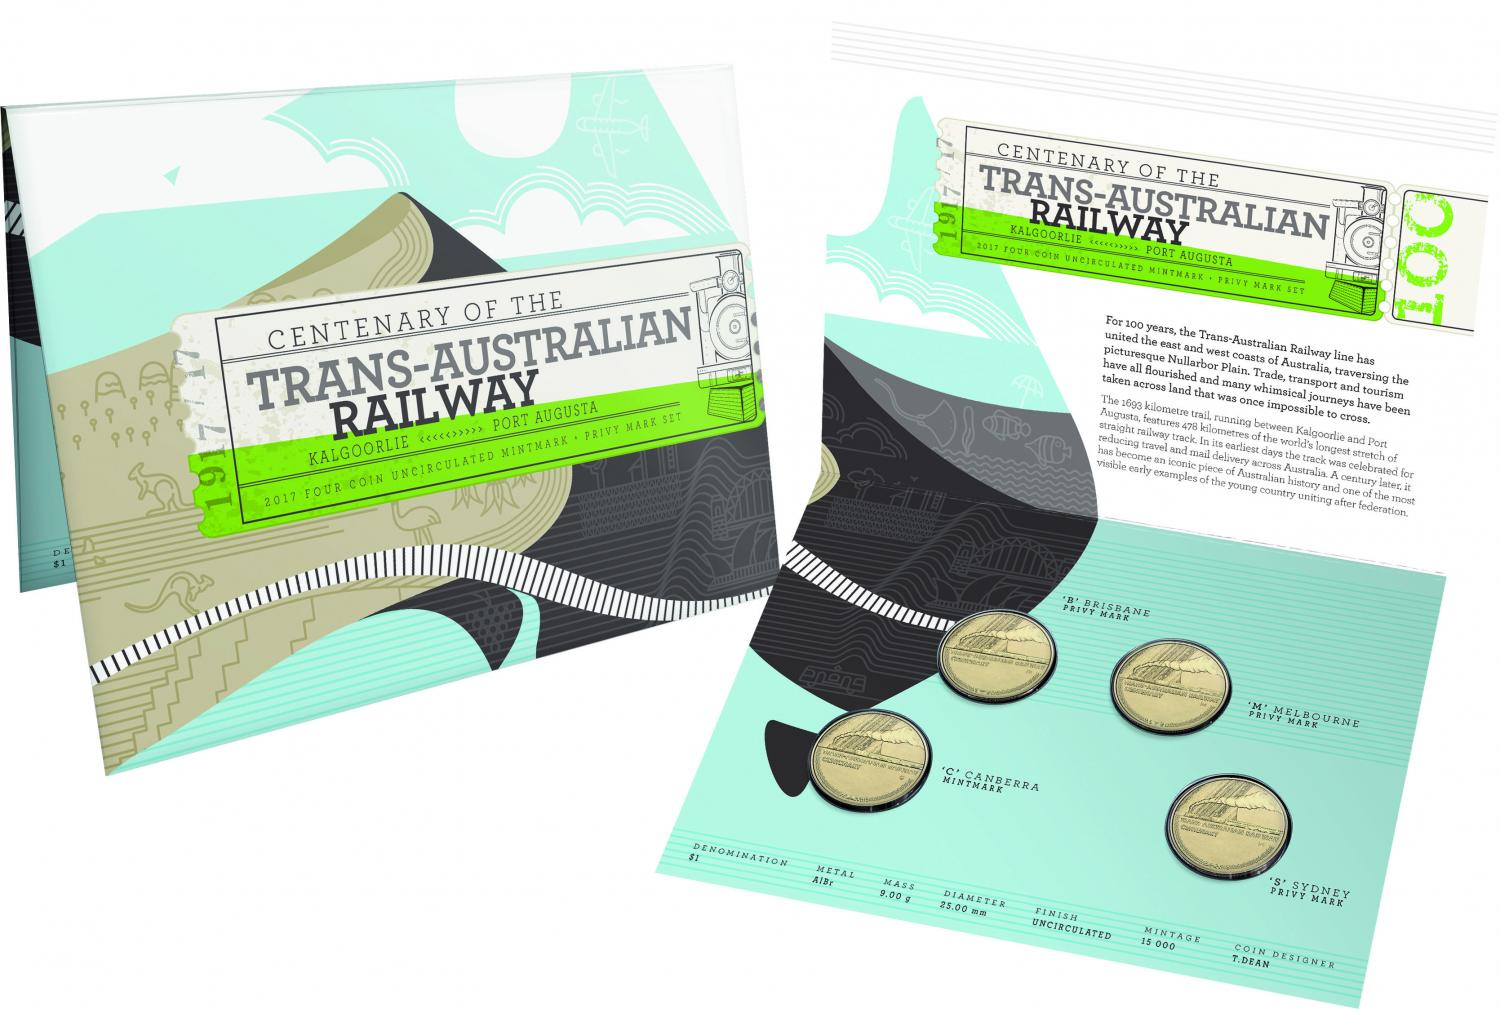 Thumbnail for 2017 Trans-Australian Railway 4 Coin Privy Mark Set CBMS